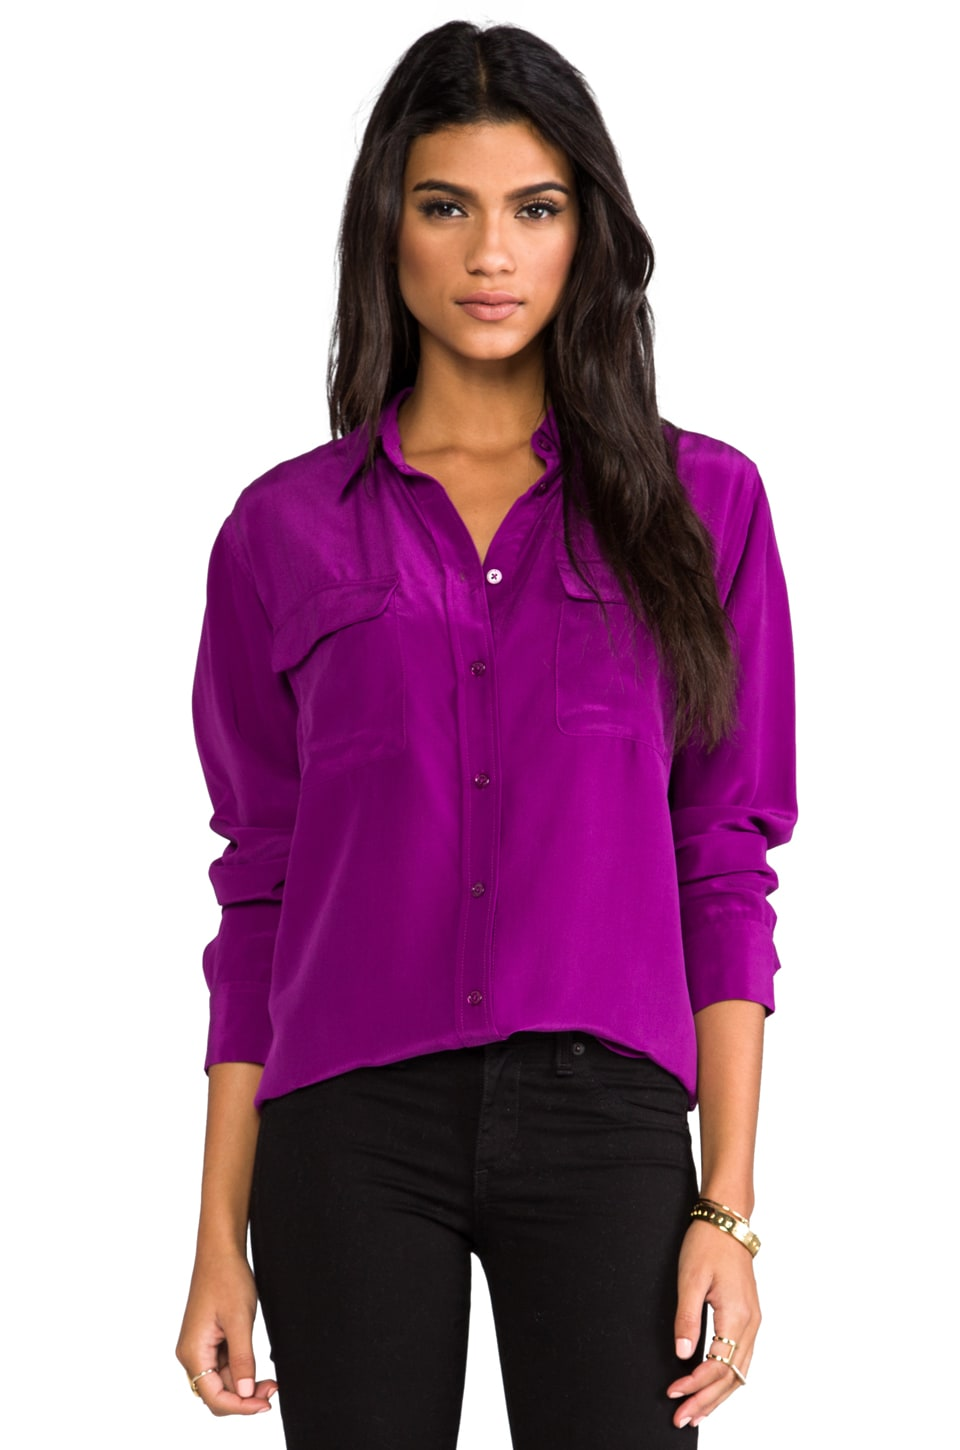 Equipment Signature Vintage Wash Blouse in Grape